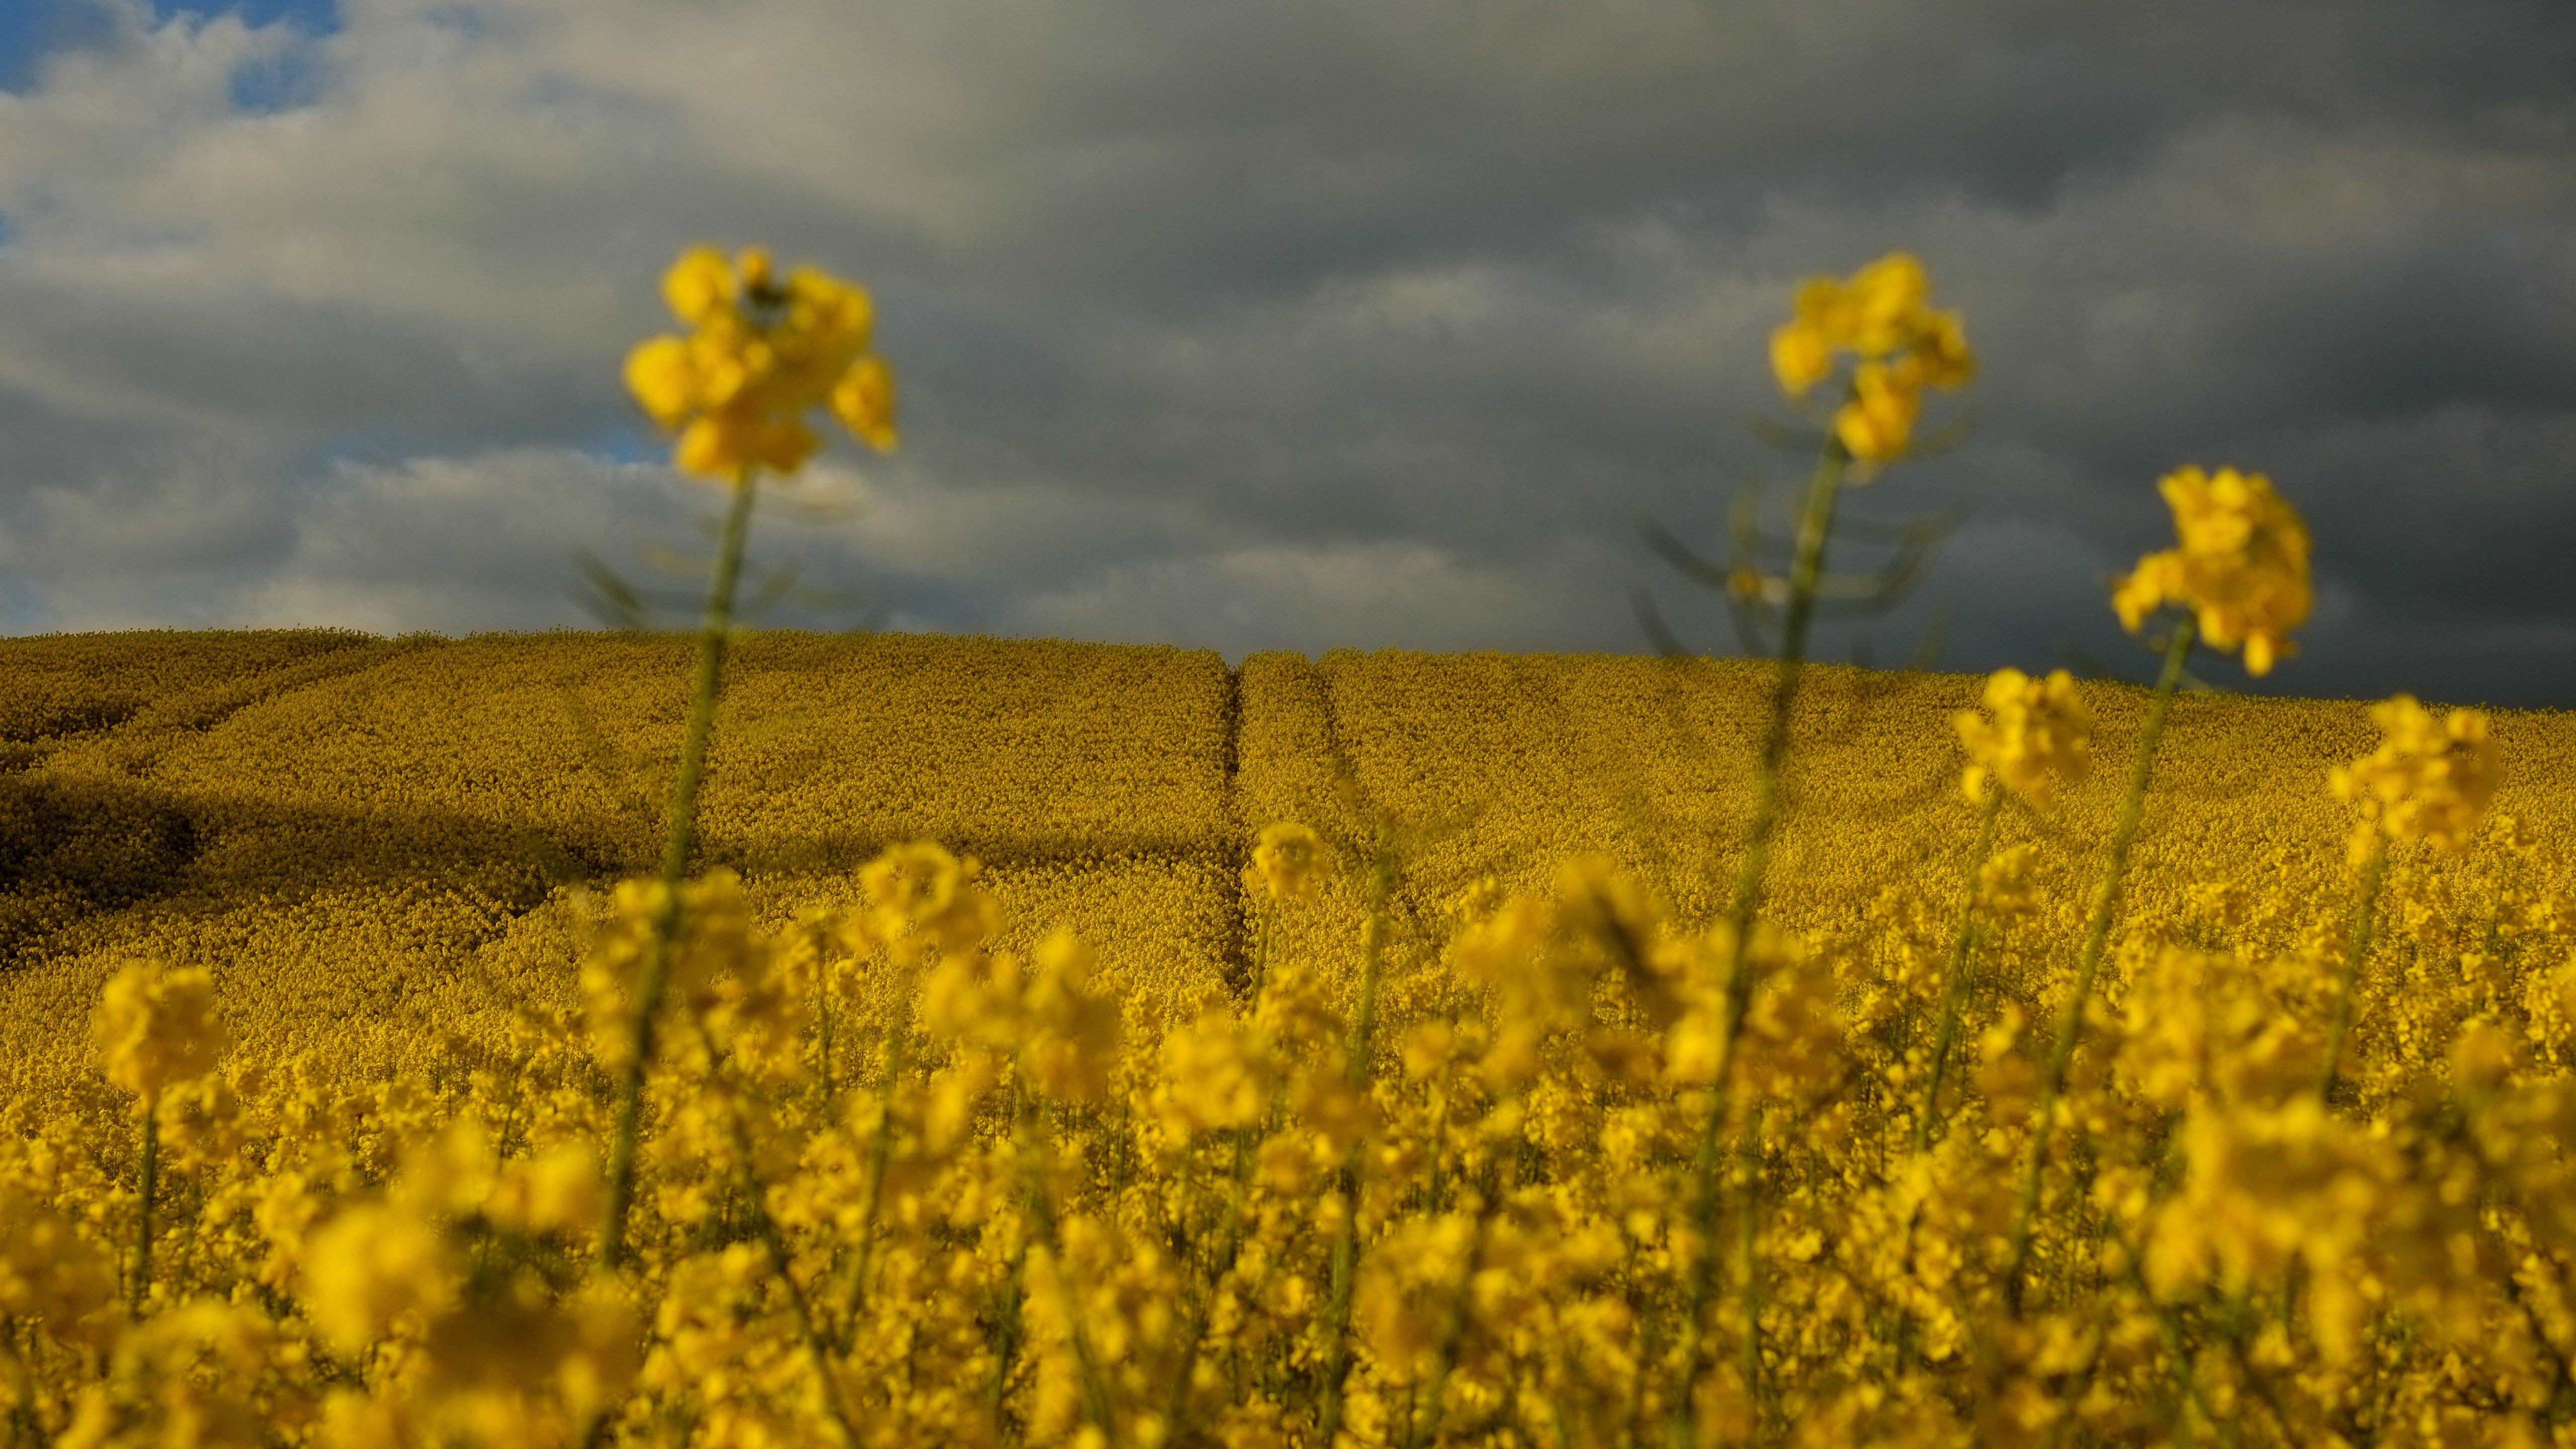 Yellows flowers cover the landscape as the sun sets on a spring day in Unzue, near Pamplona, northern Spain.